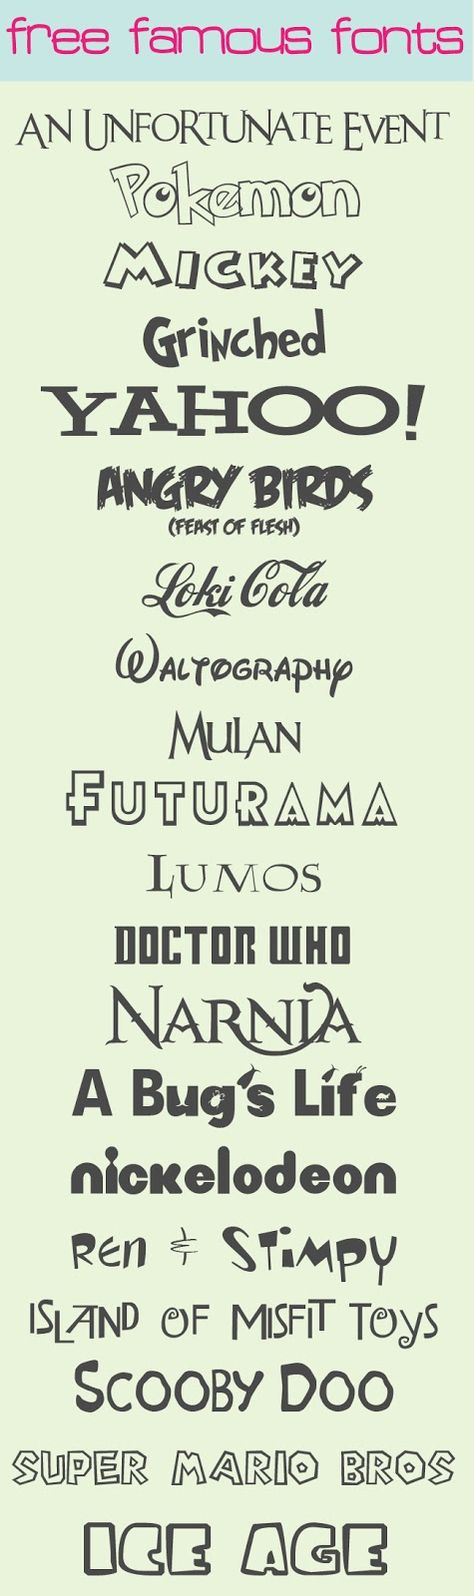 Love these free fonts